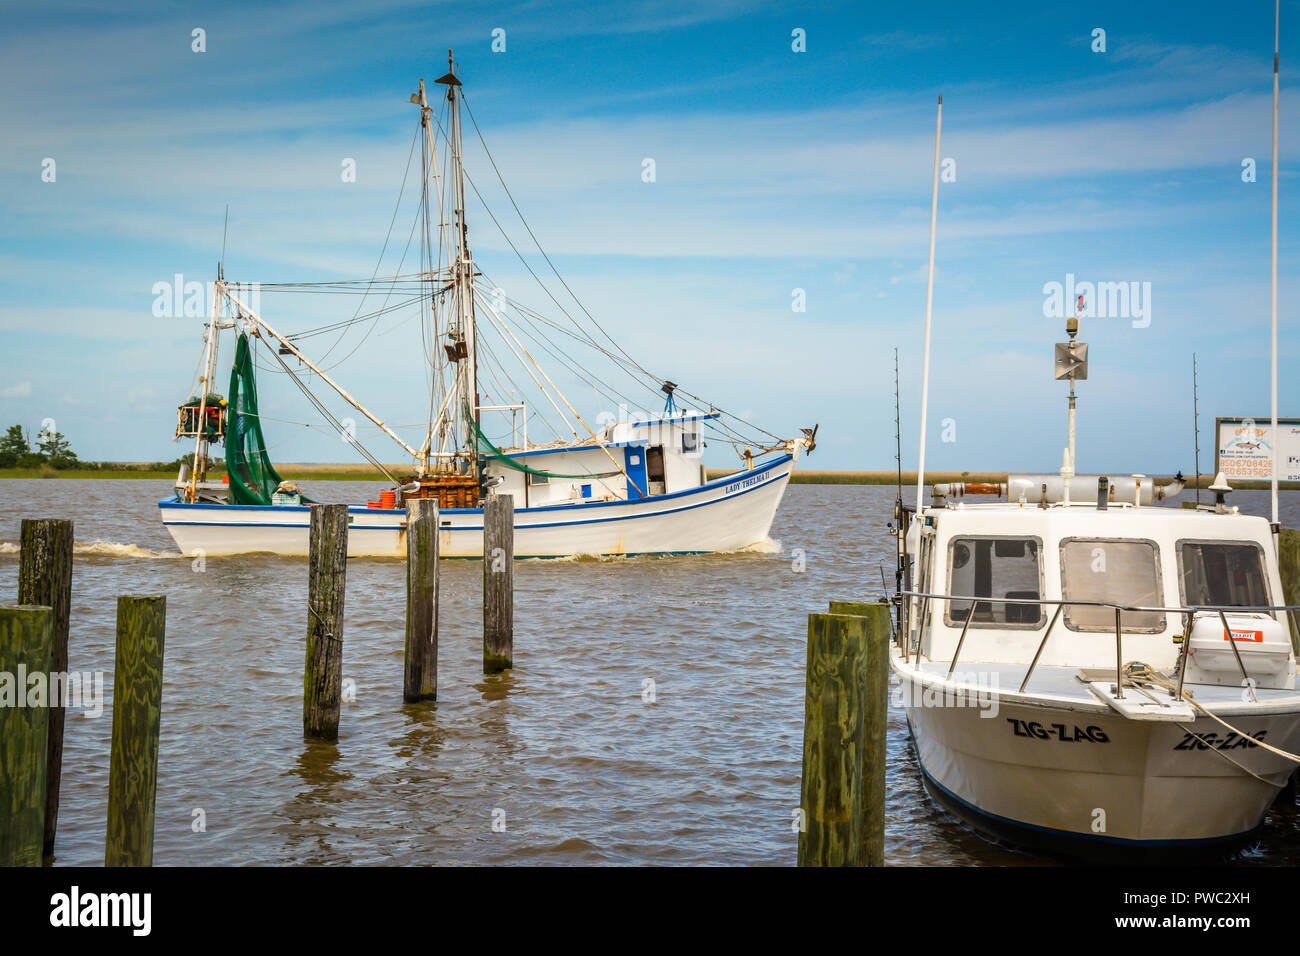 Fishing and tourist boats anchor and moor around the marina and docks in Apalachicola, FL on the bay in the Florida Panhandle Stock Photo